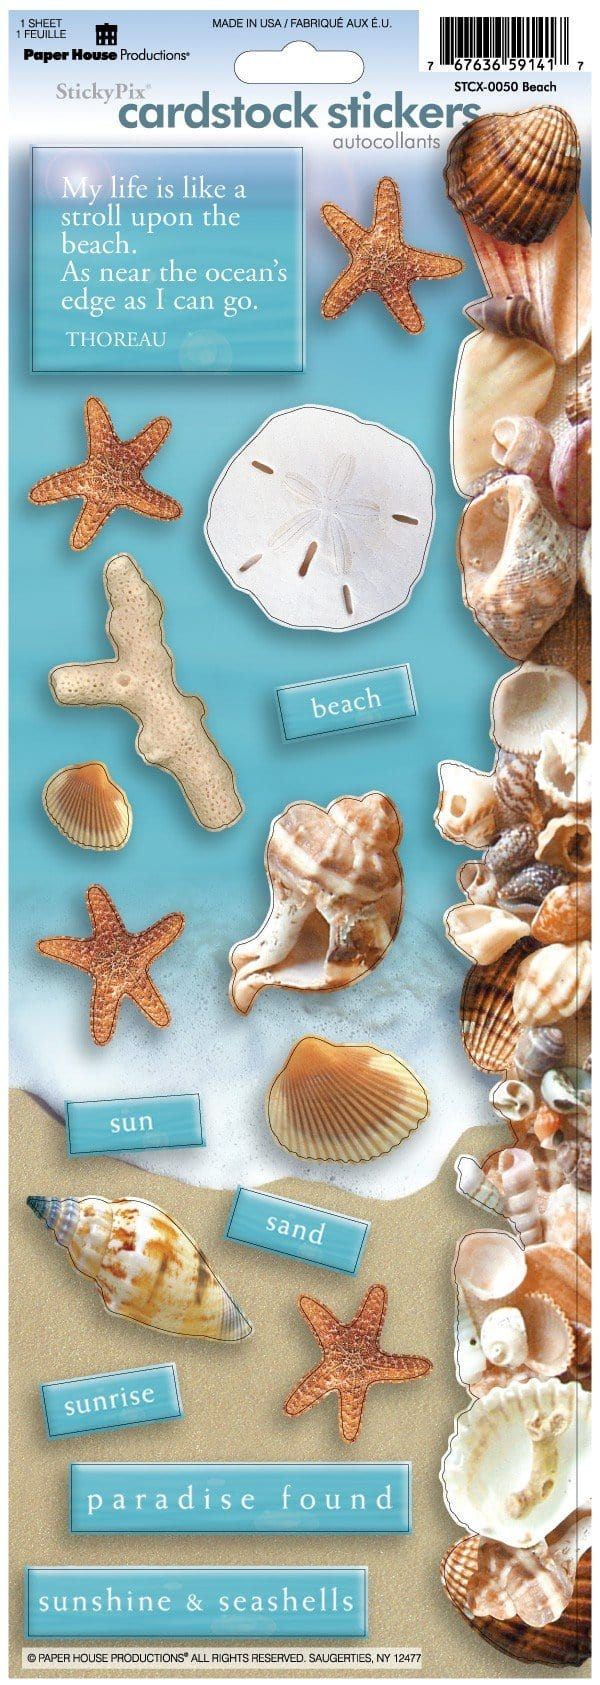 Beach Cardstock Stickers